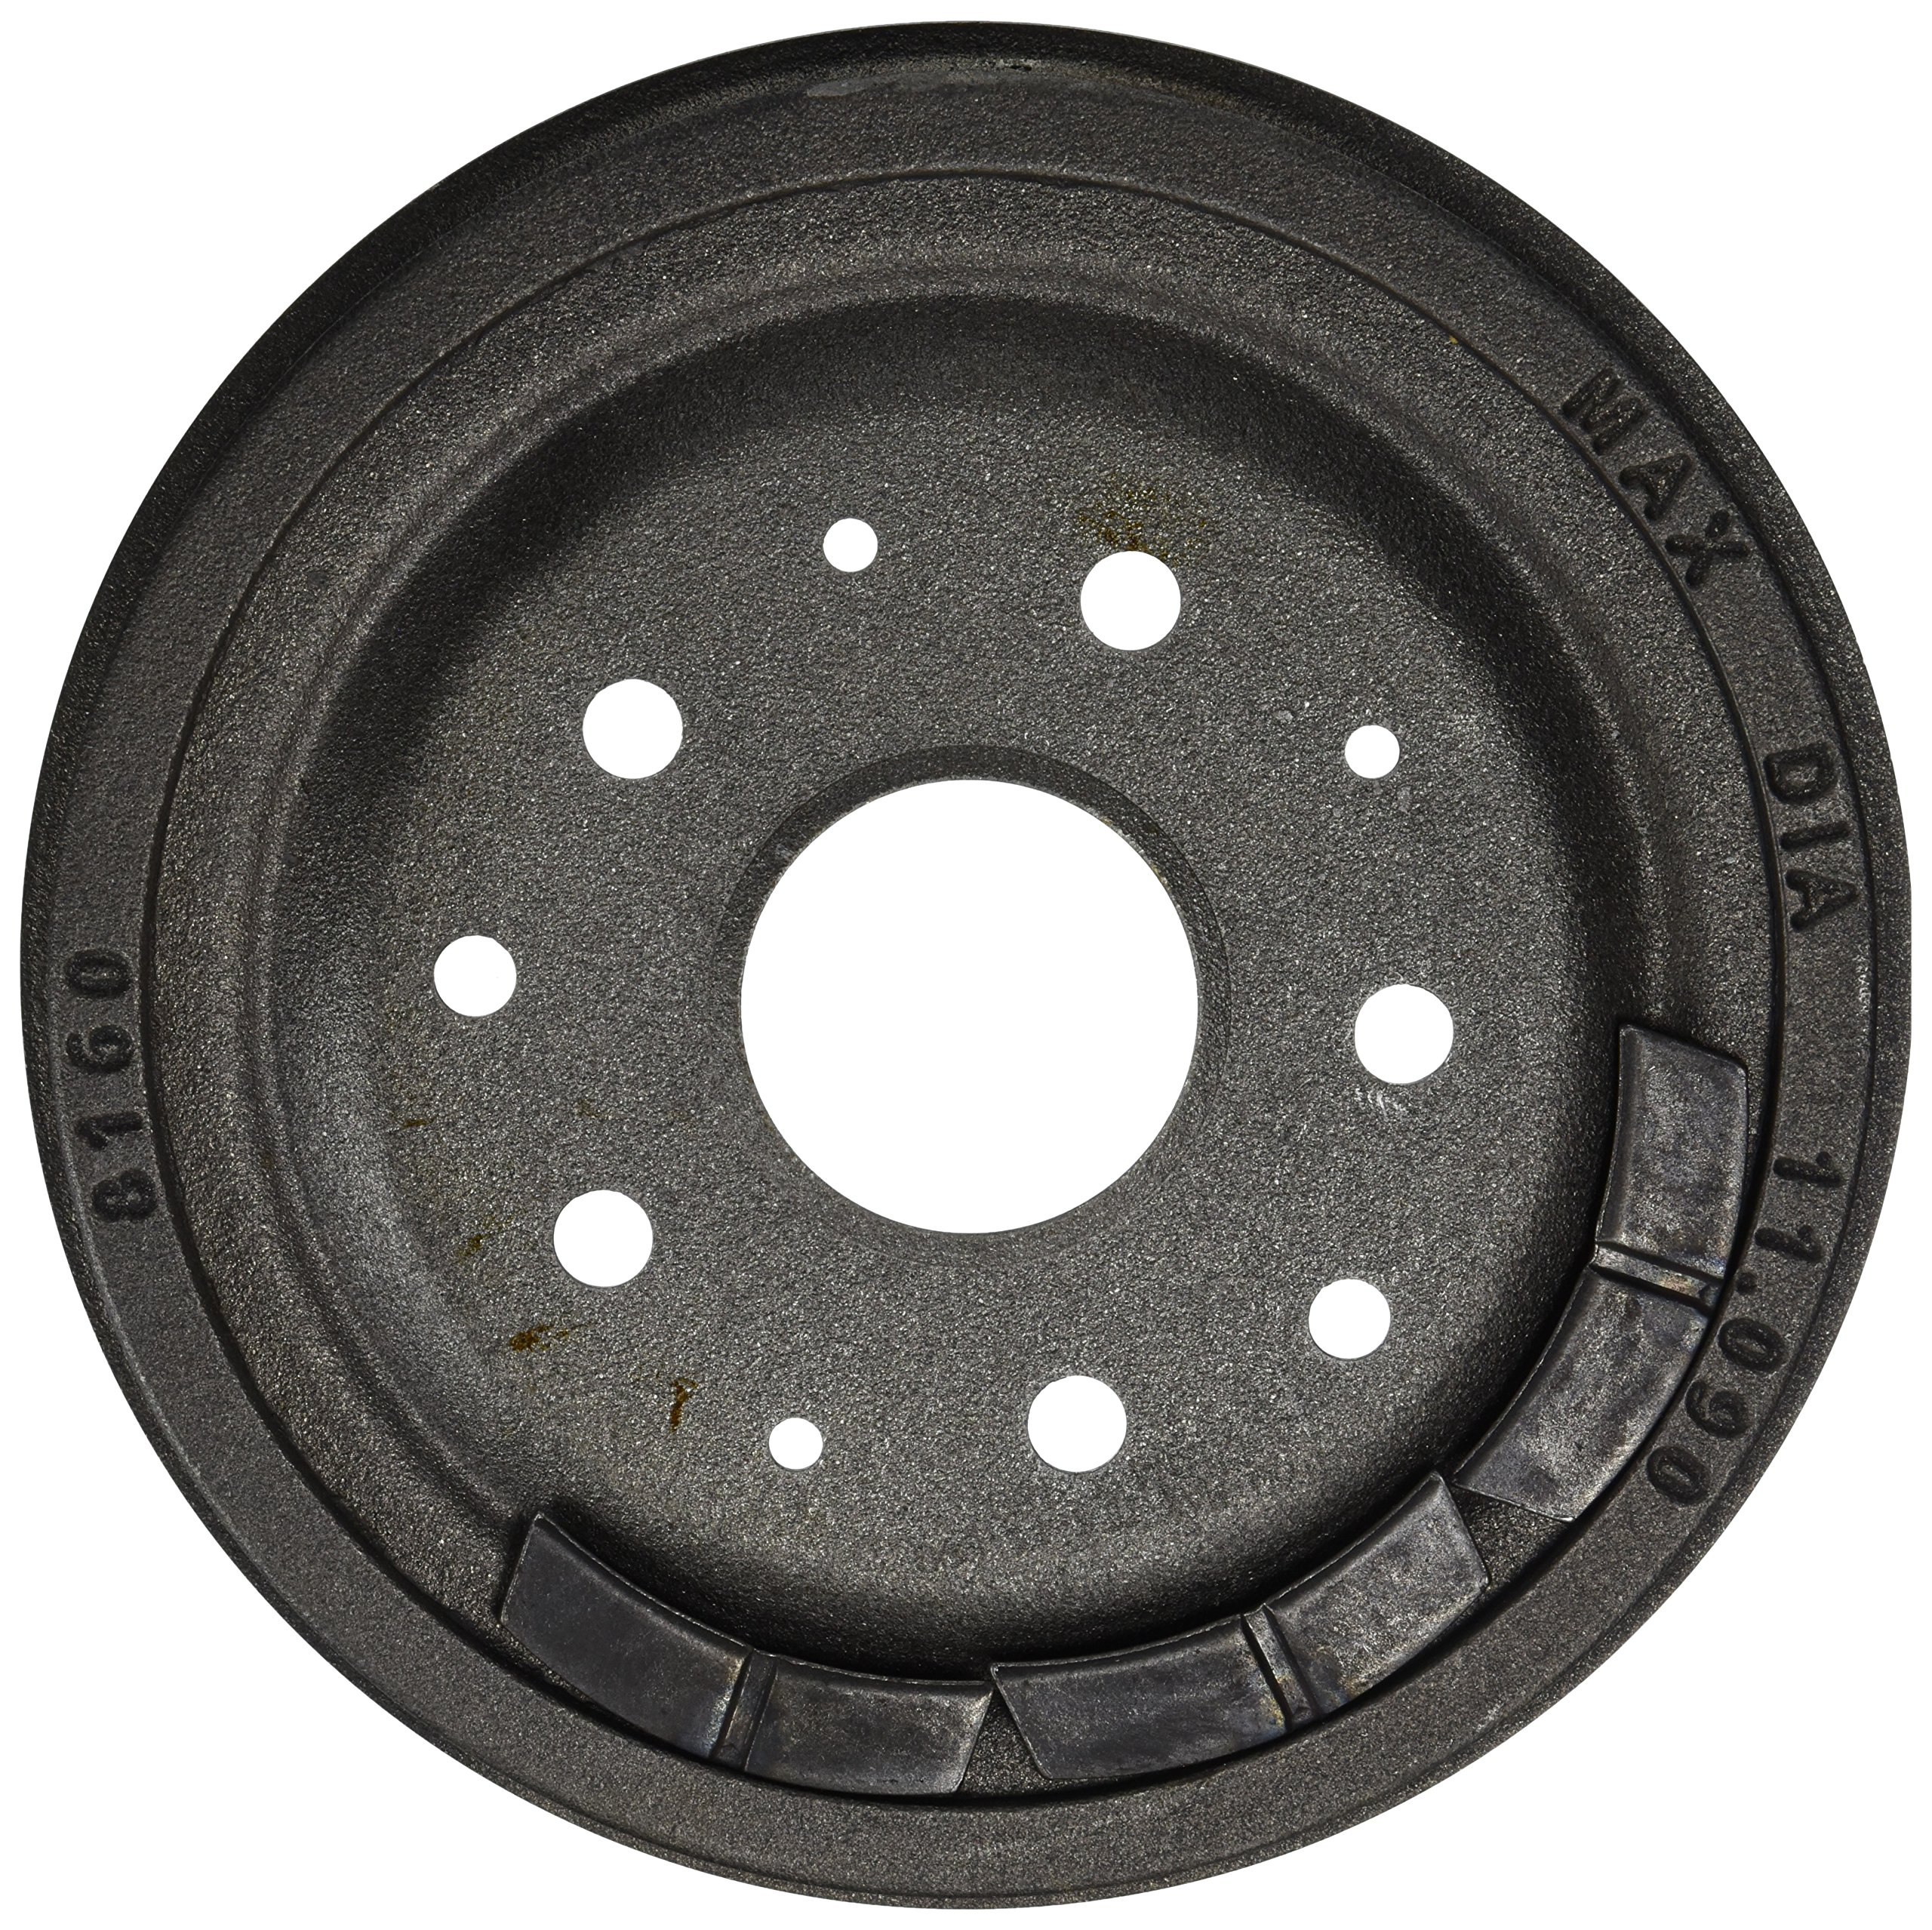 Bendix PDR0115 Brake Drum